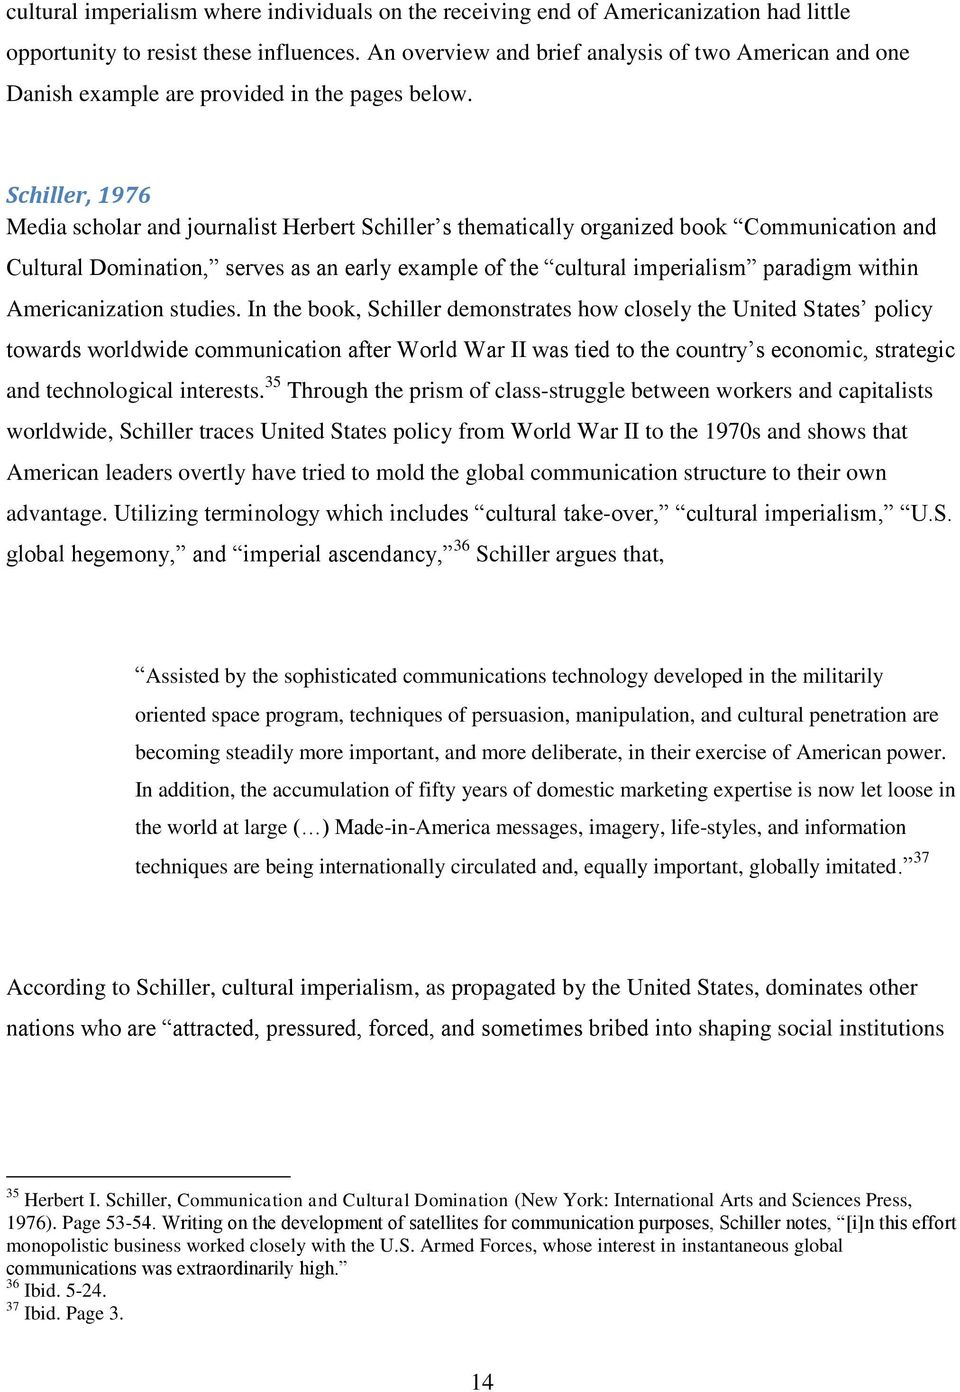 The Jeremiad Over Journalism Pdf